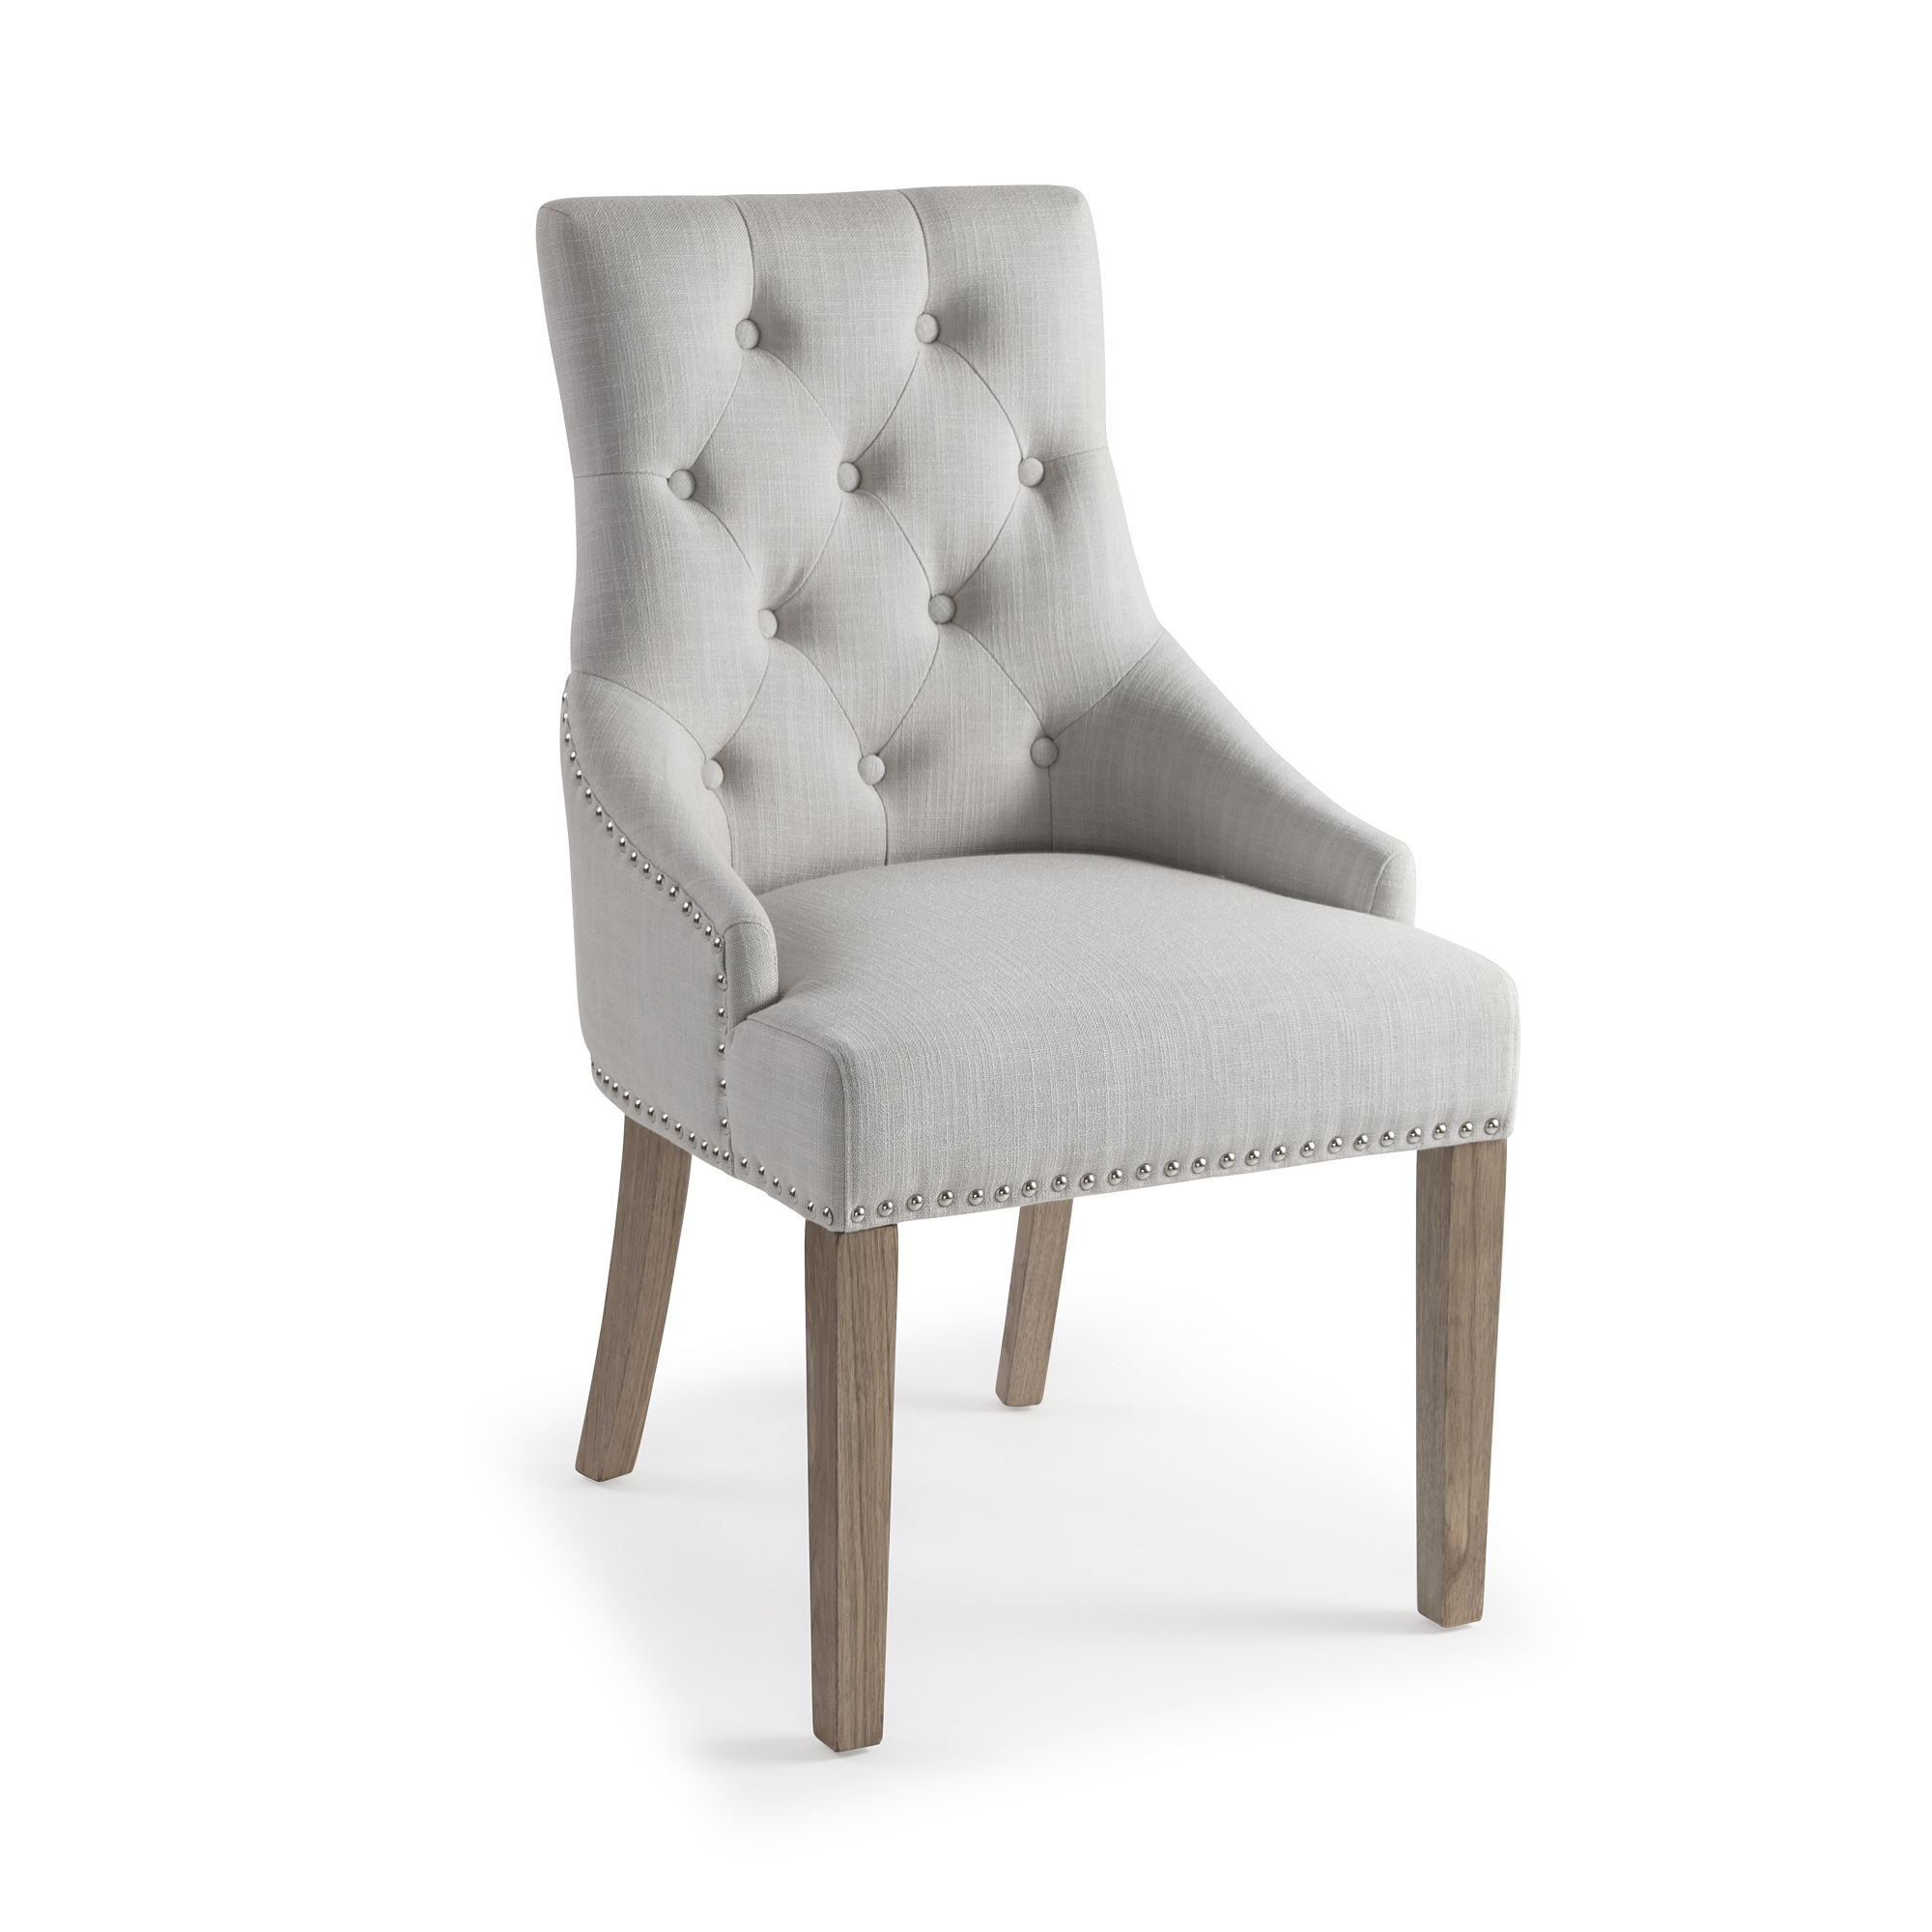 Chelsea Upholstered Scoop Dining Chair – Natural Linen